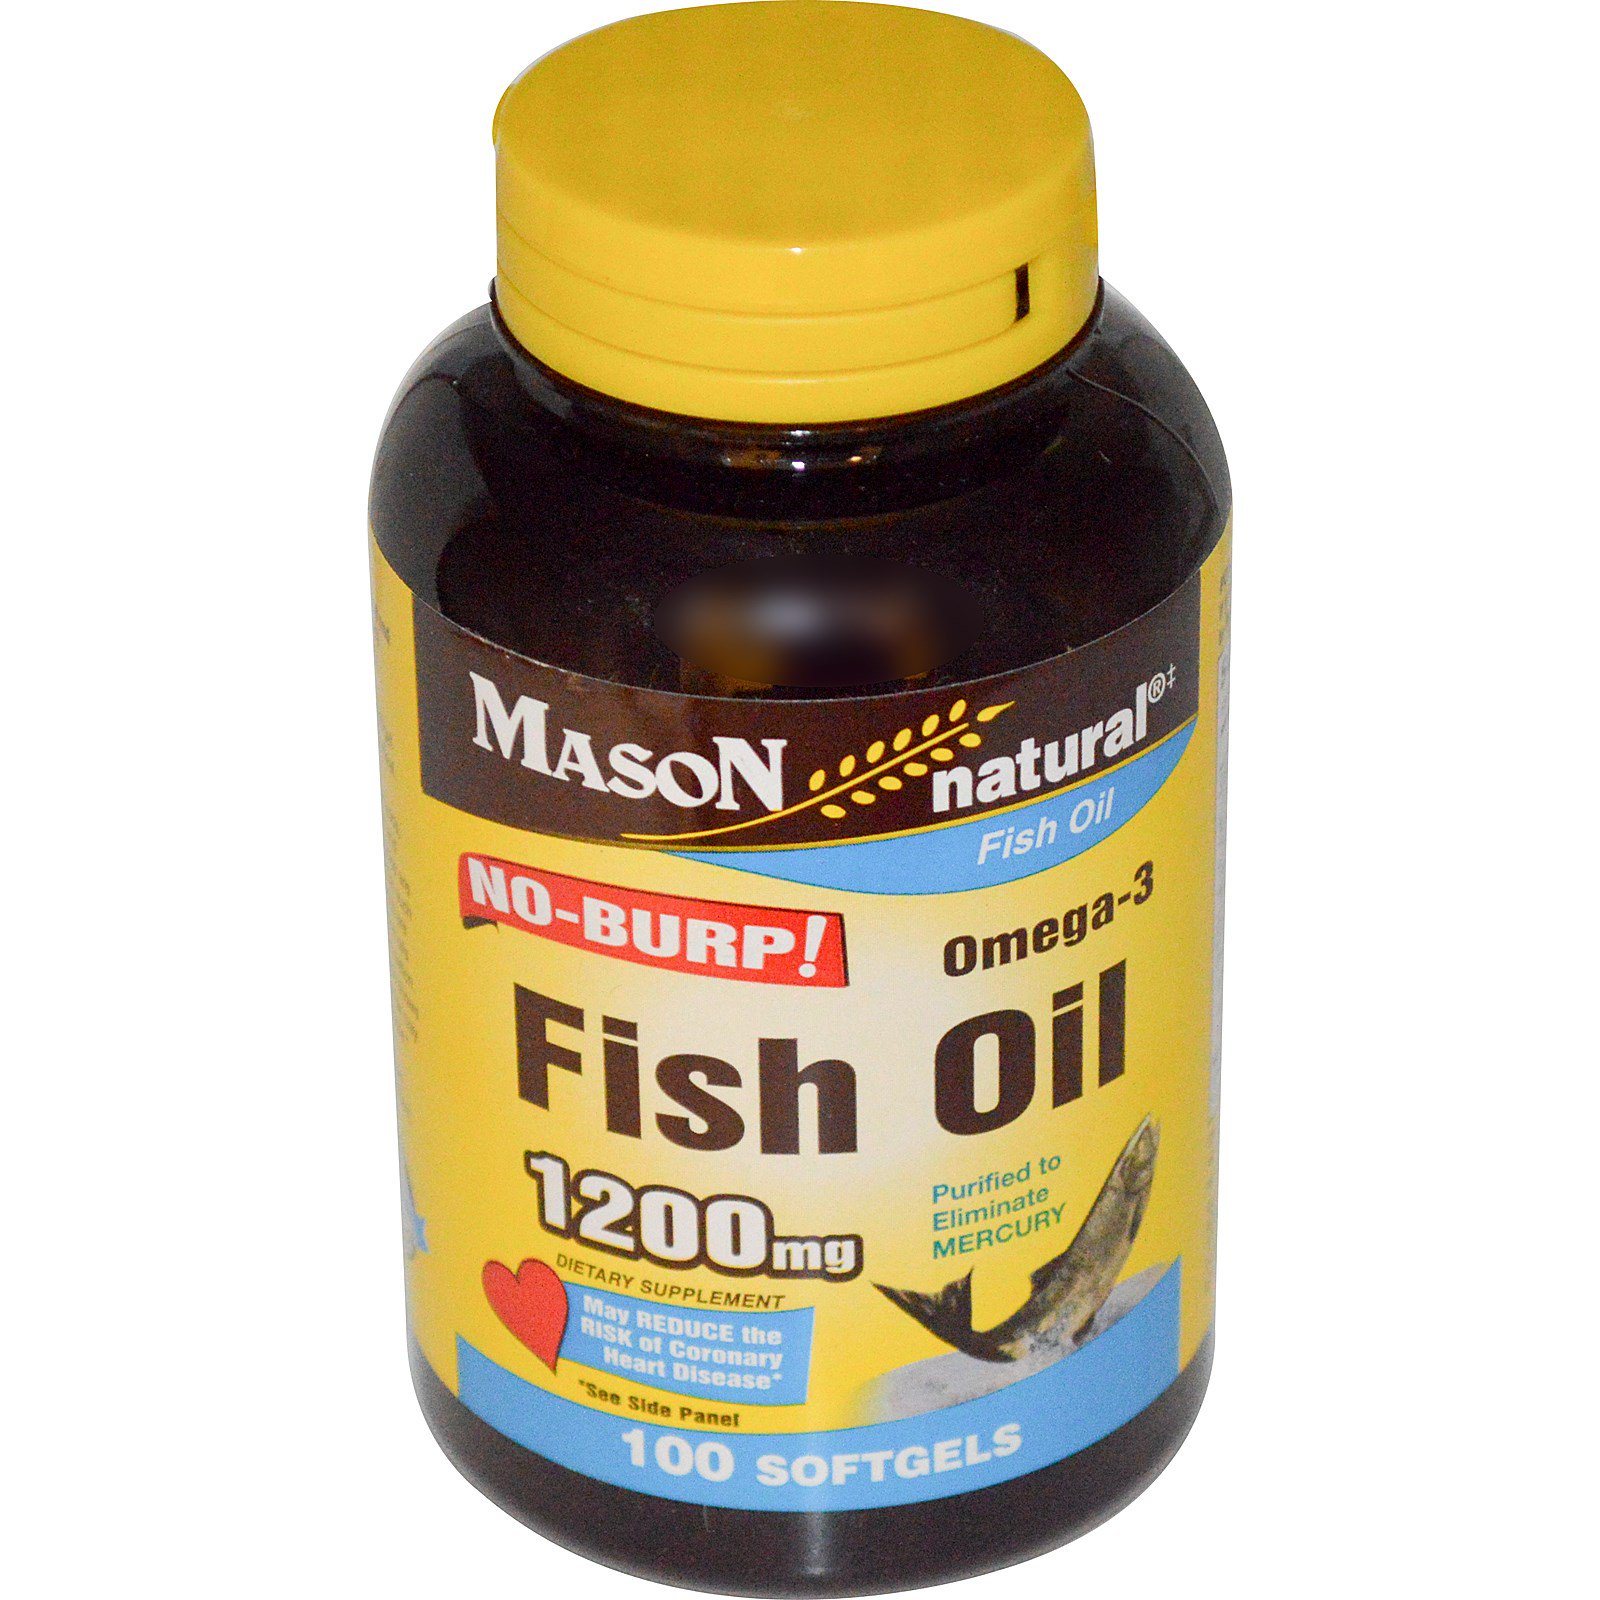 Mason natural omega 3 fish oil 1200 mg 100 softgels for Is omega 3 the same as fish oil